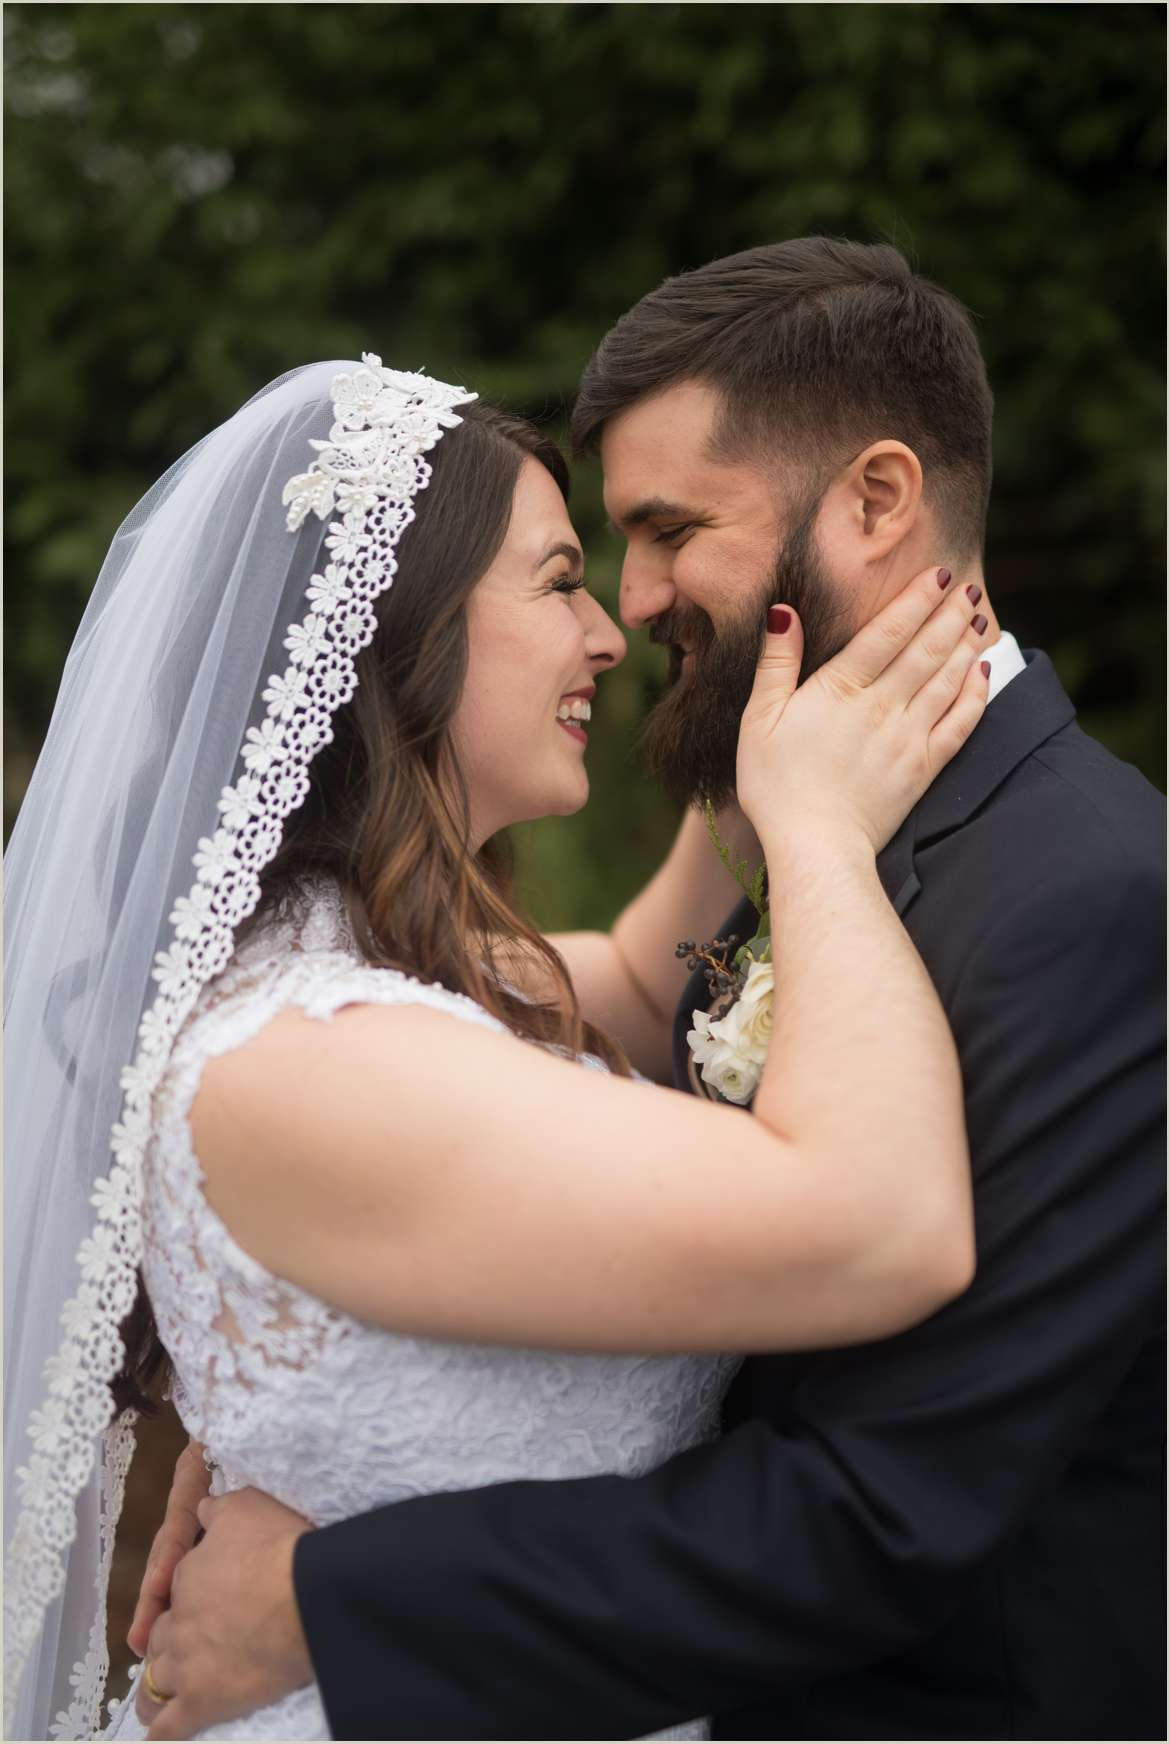 joyful wedding photos